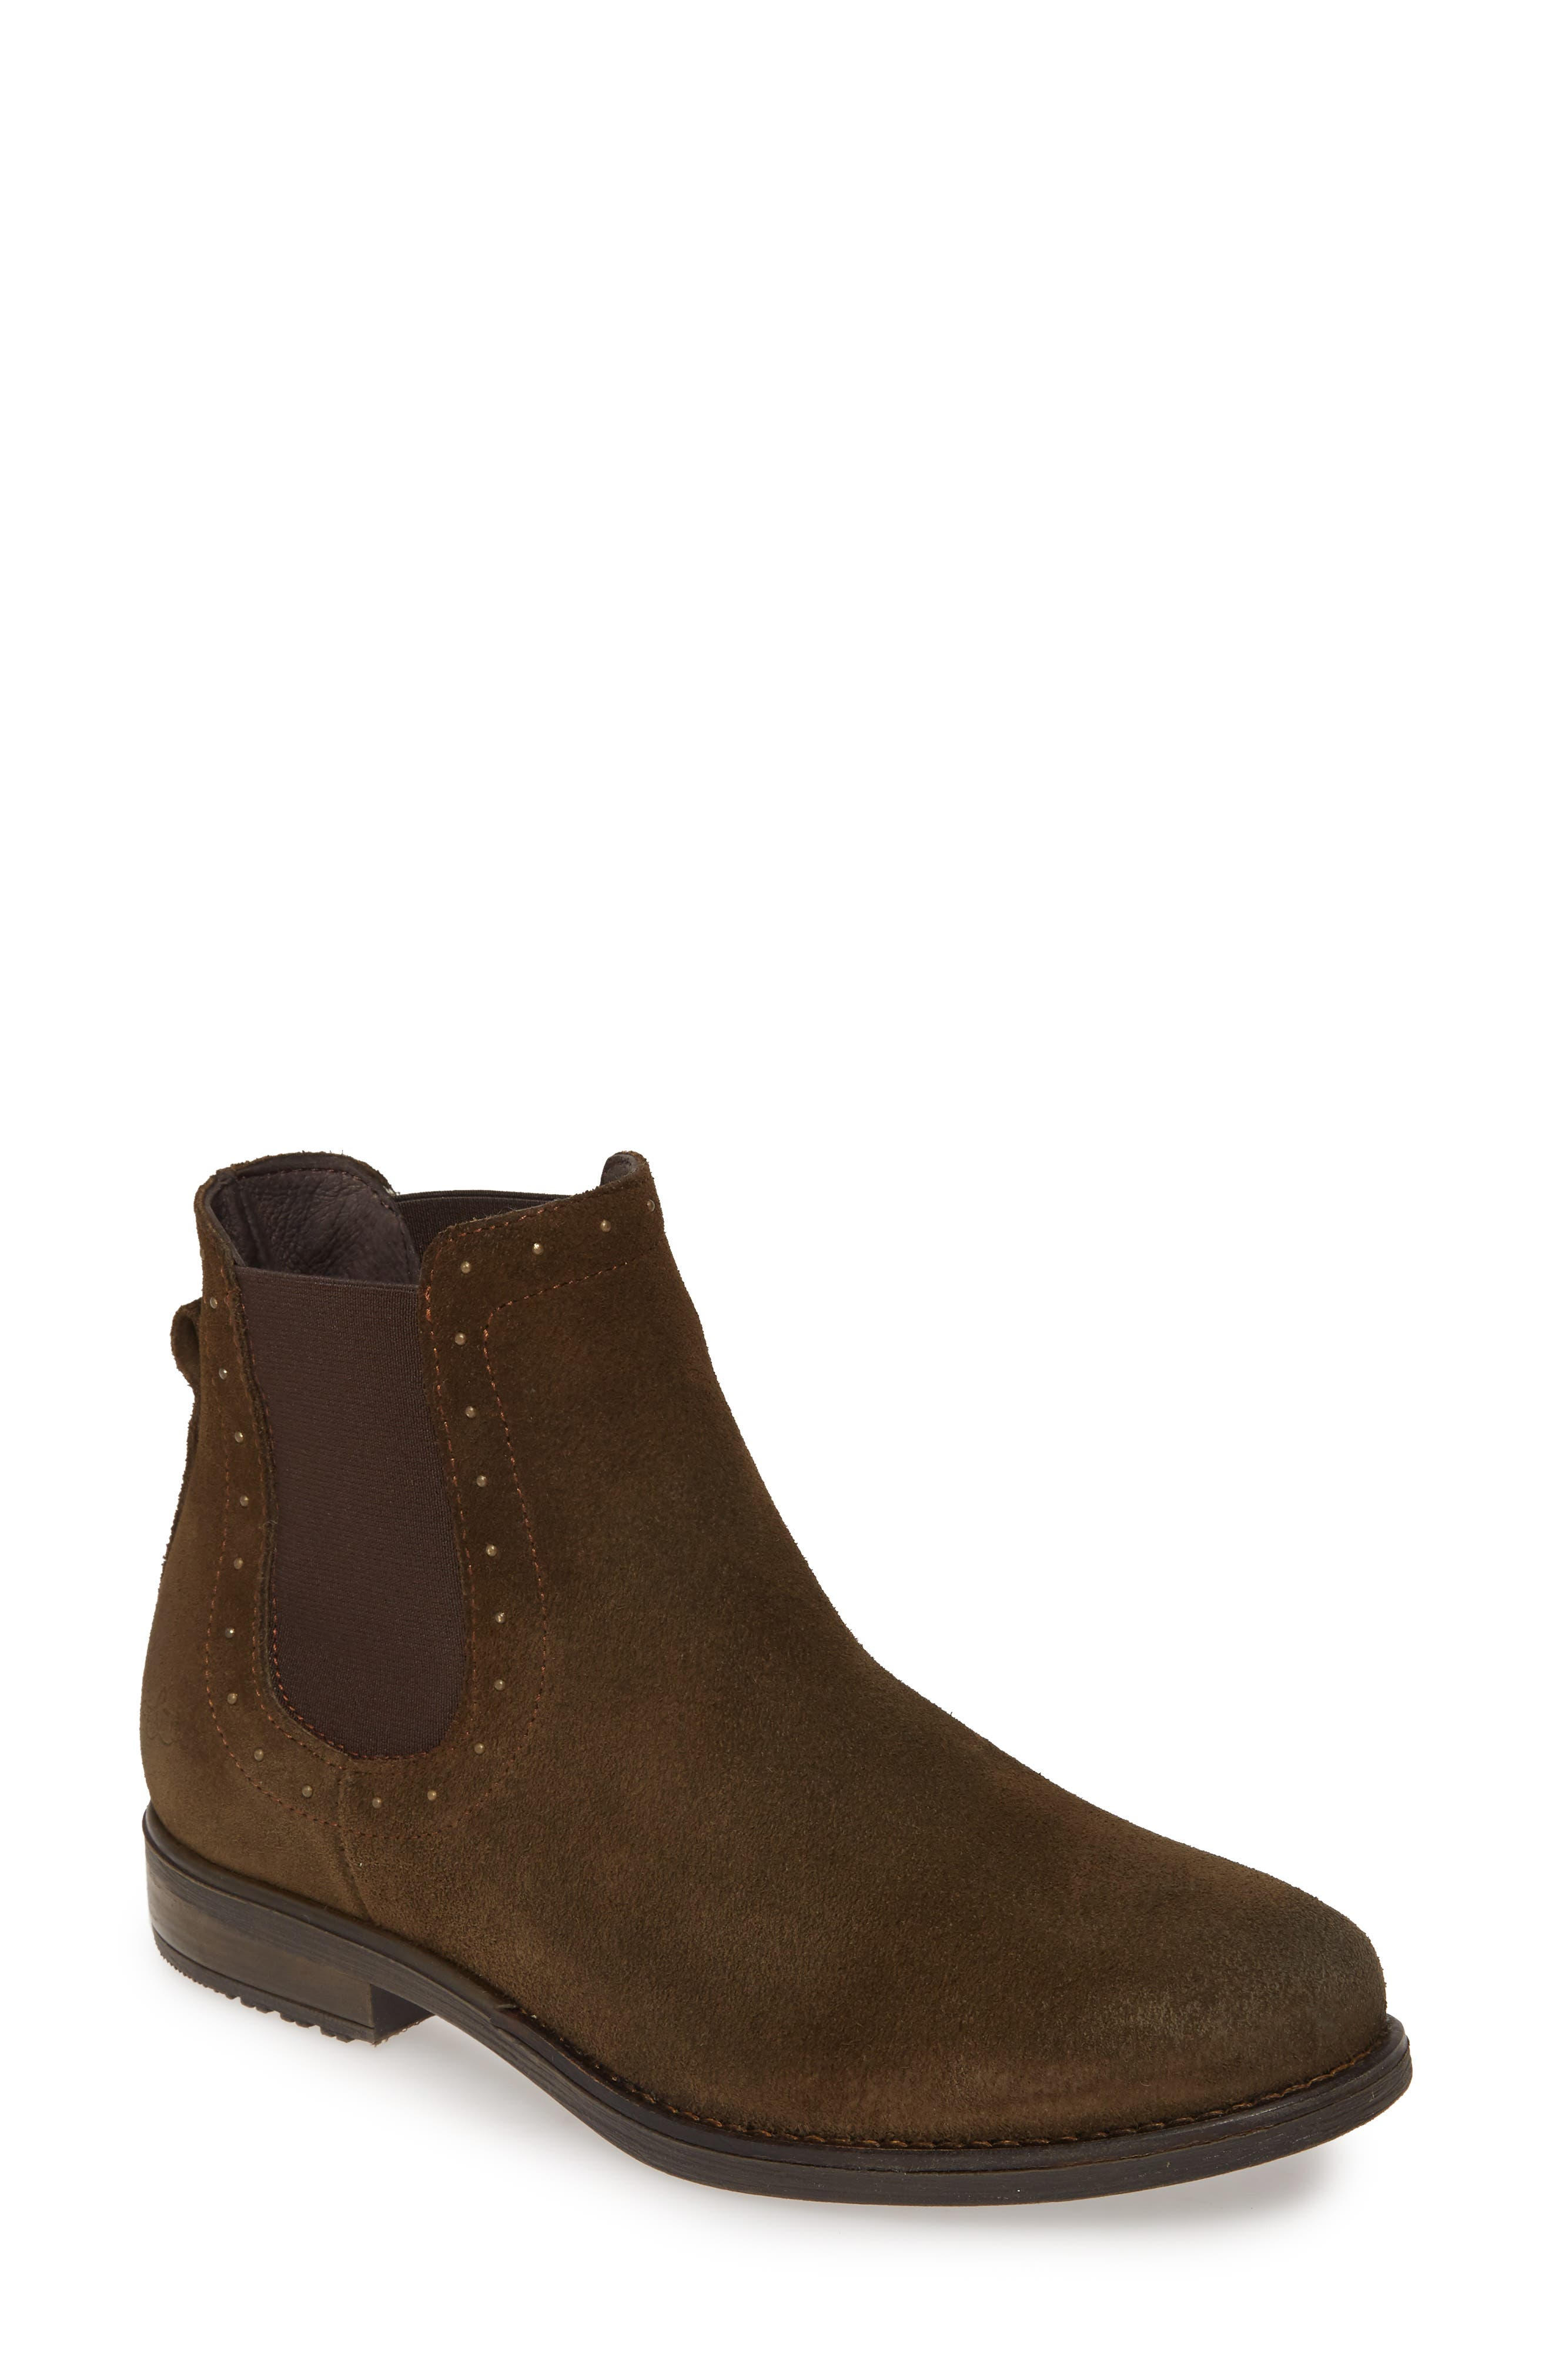 Bos. & Co. Risk Chelsea Boot - Green